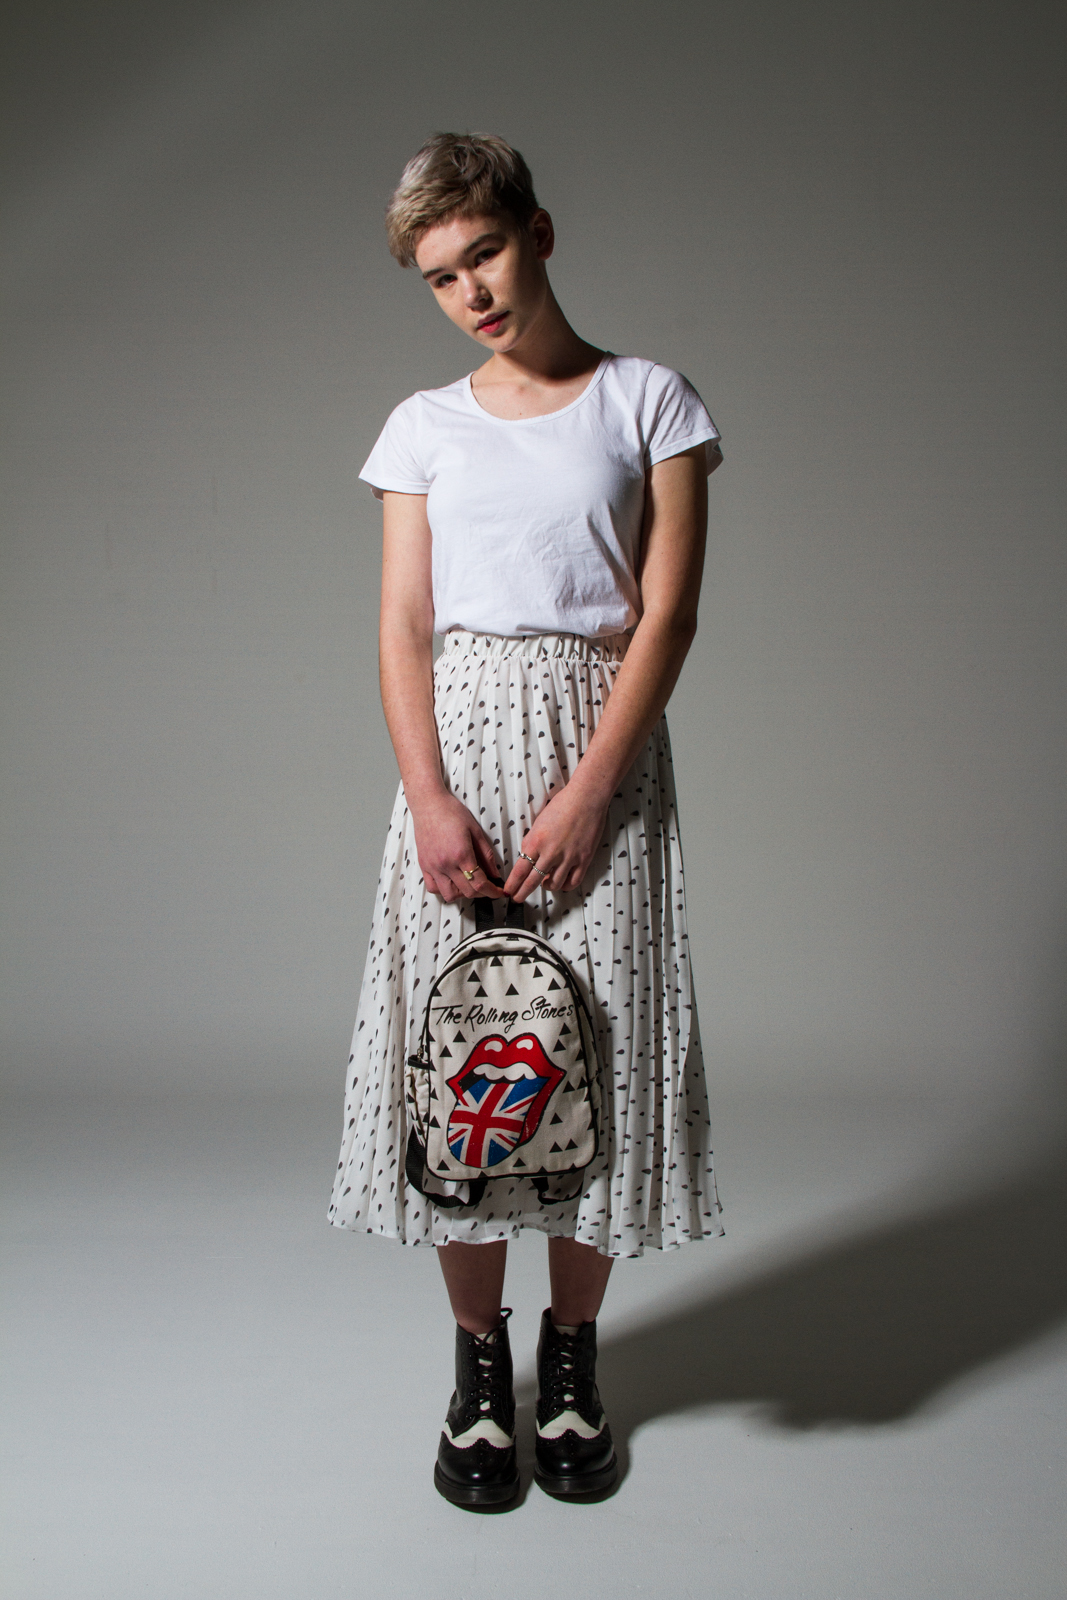 See You Later Pleat Skirt $289 with Cotton on Kids bag & Dr Martens